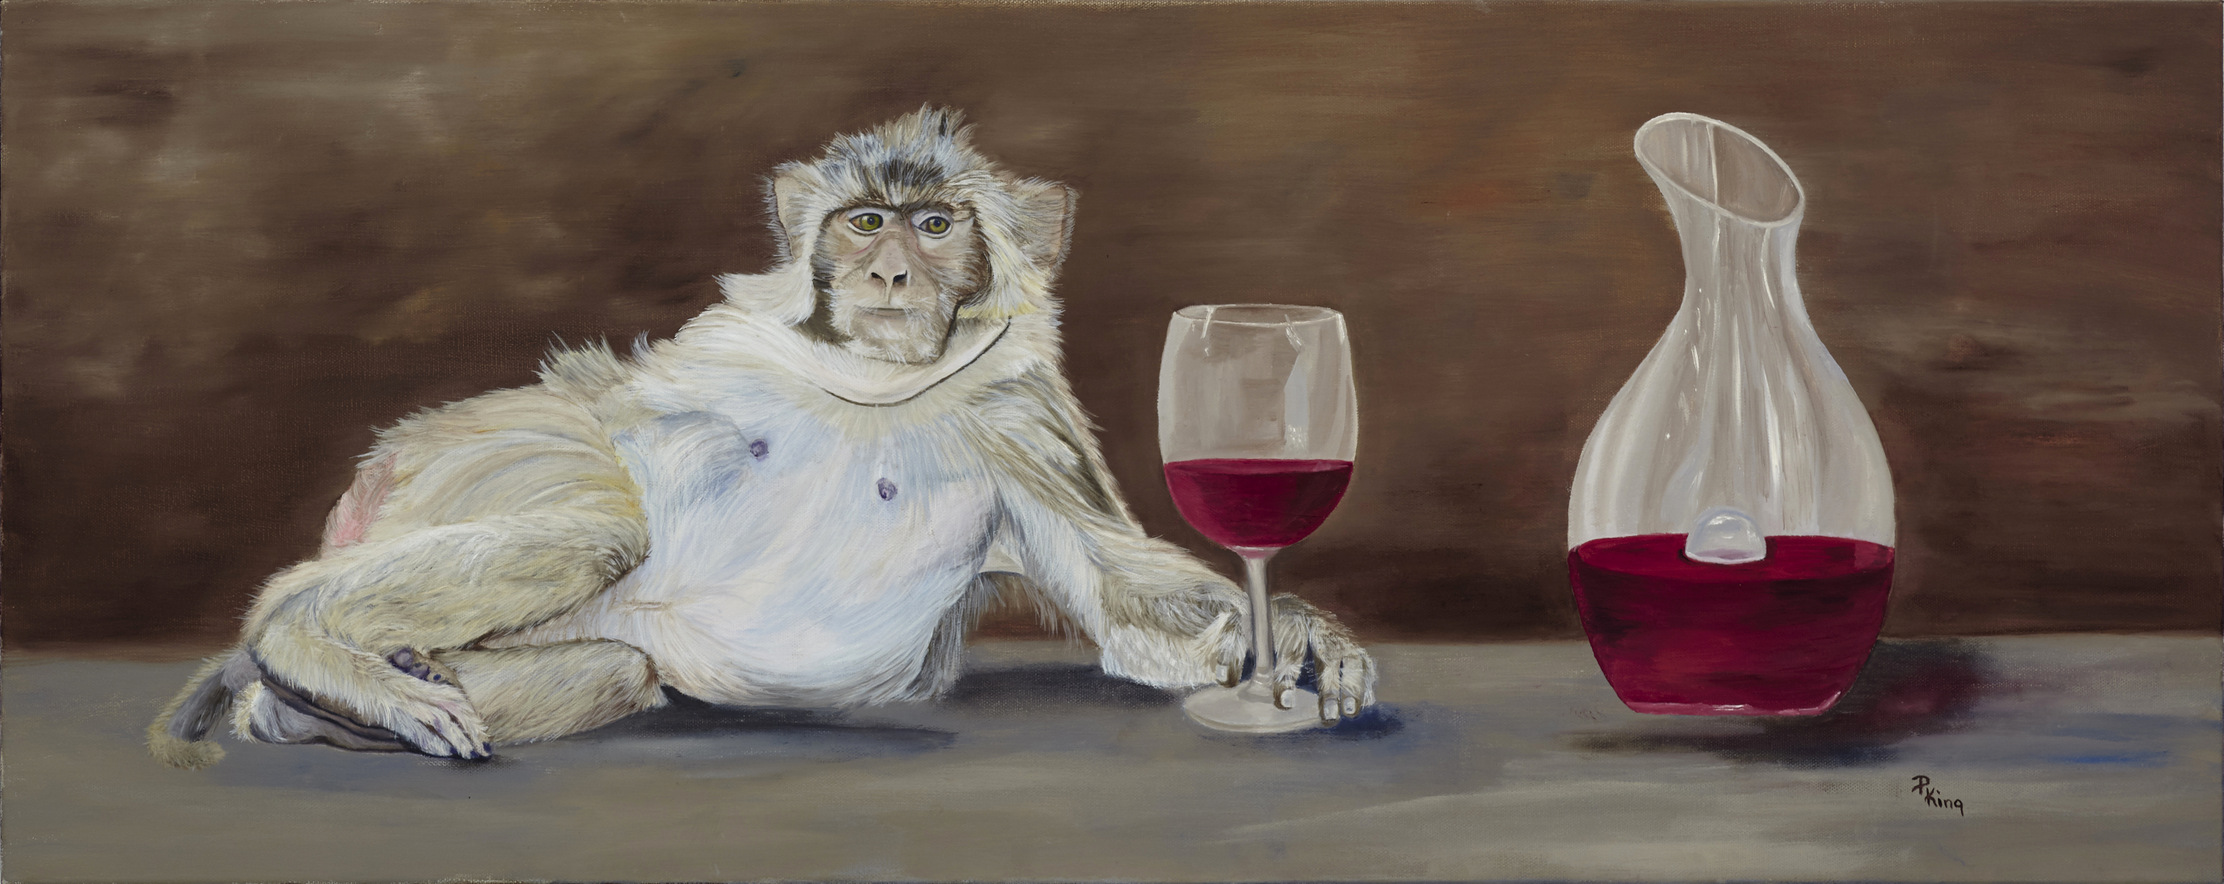 """""""KING OF WINE"""",   Giclee Print on Paper,  8x20 inches  $75"""